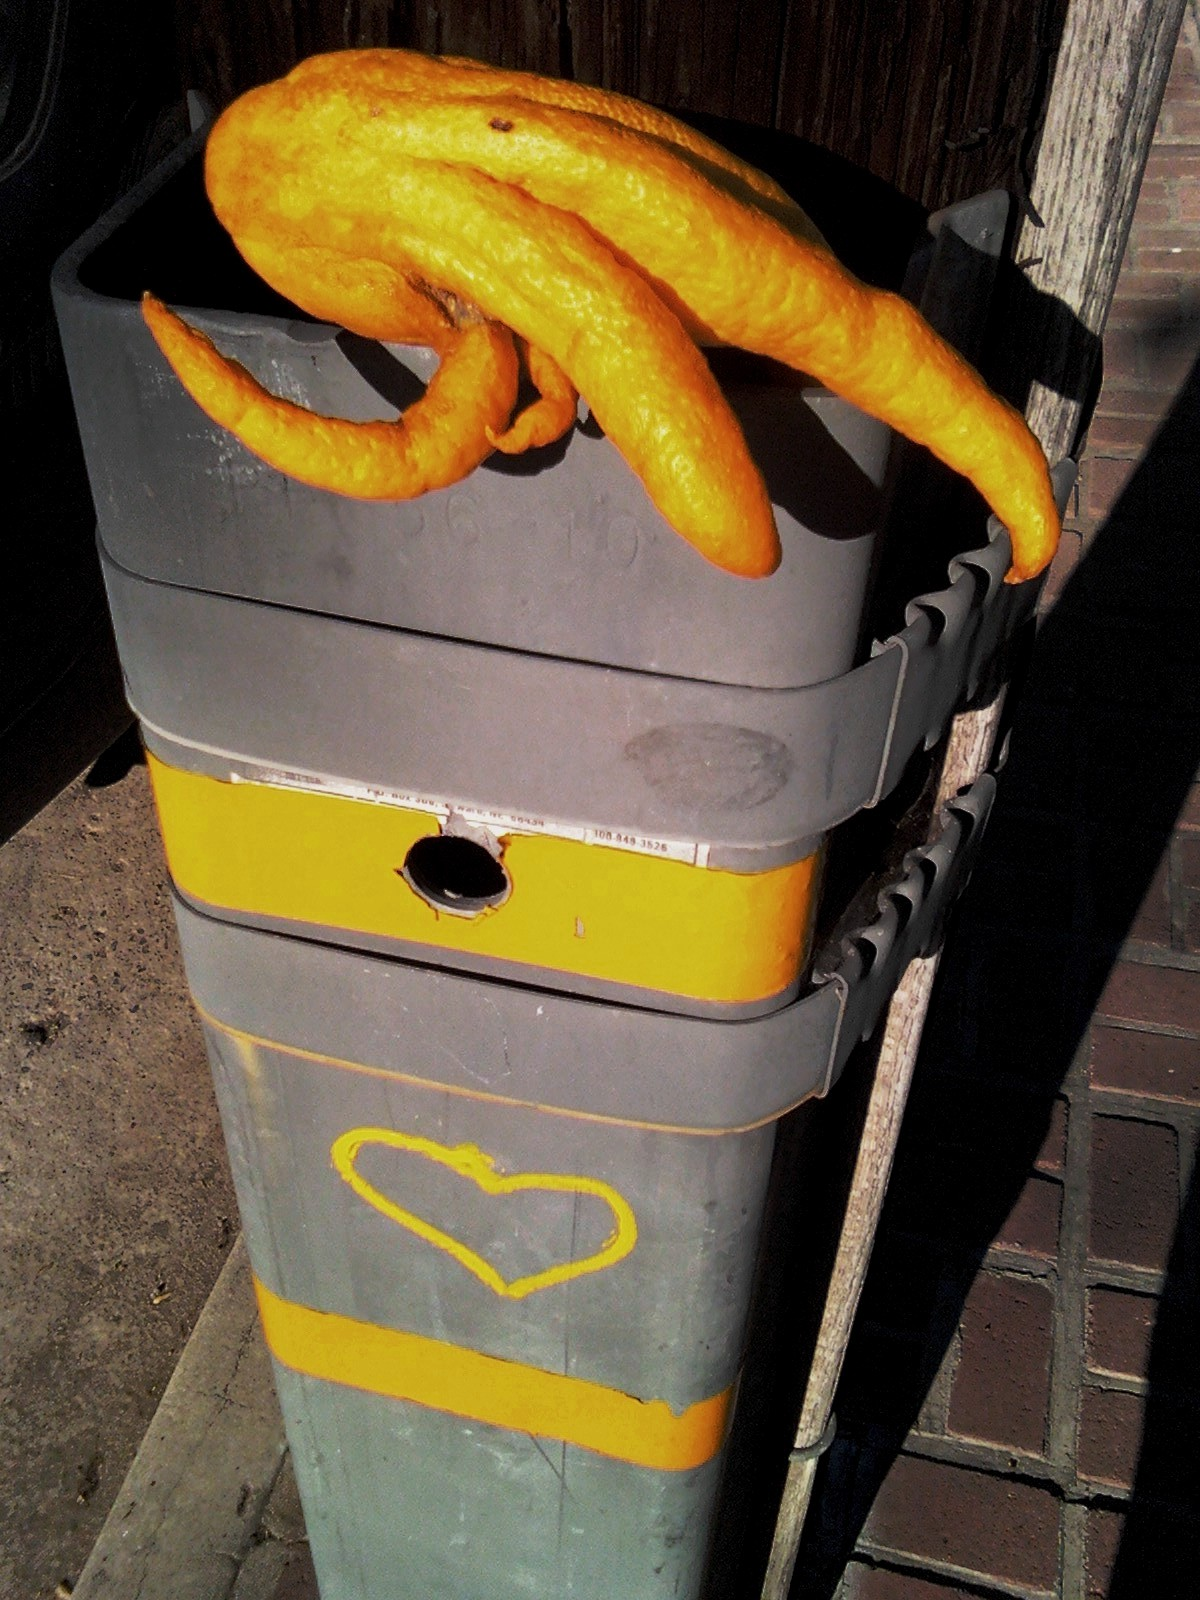 The Budda's Hand Finds The Yellow Heart, N. Beachwood Ave